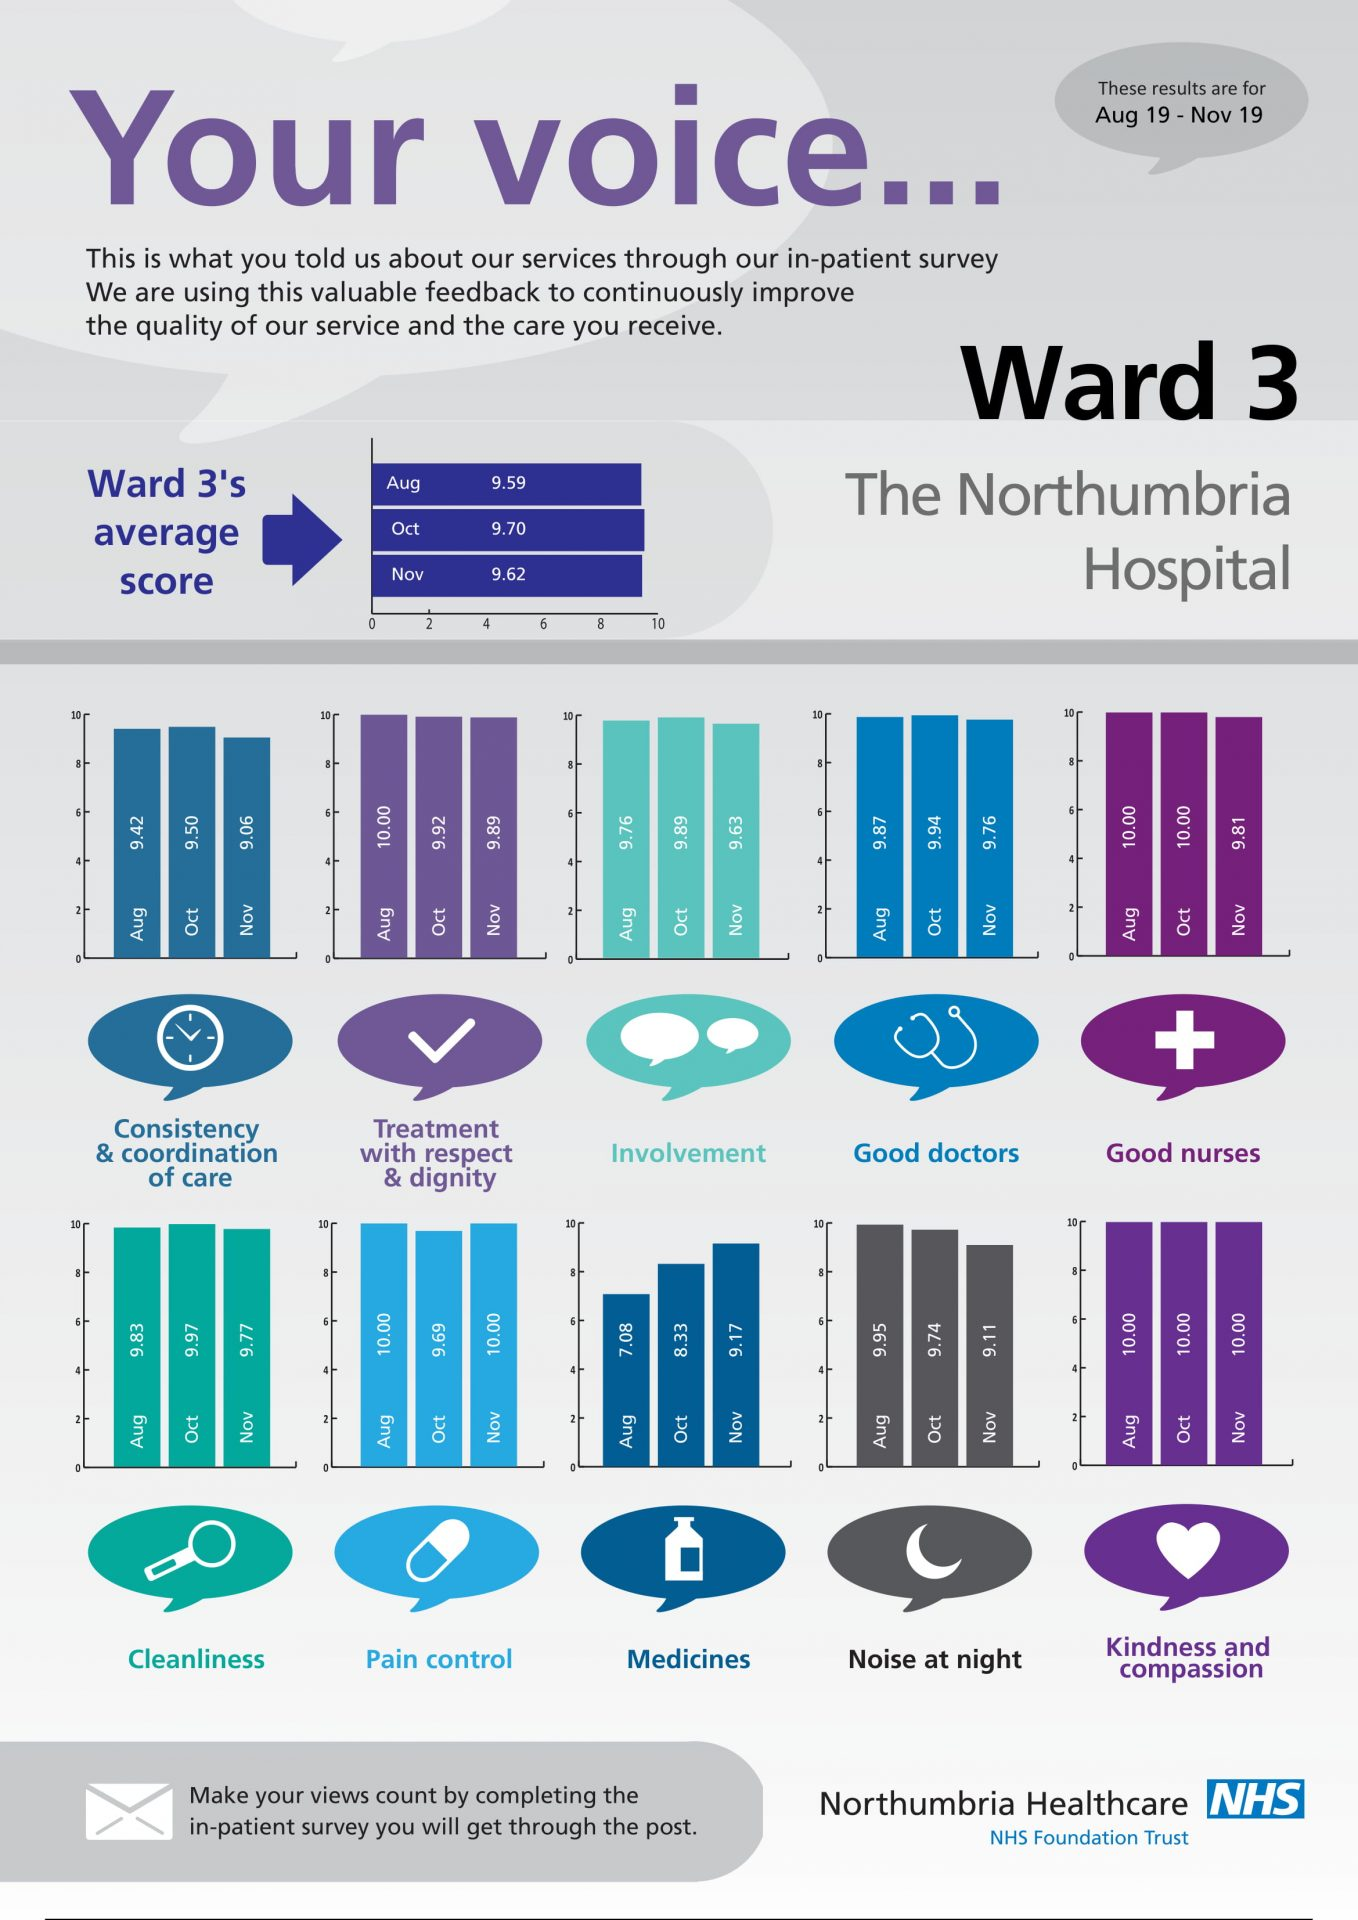 The Northumbria Hospital - Ward 3-1